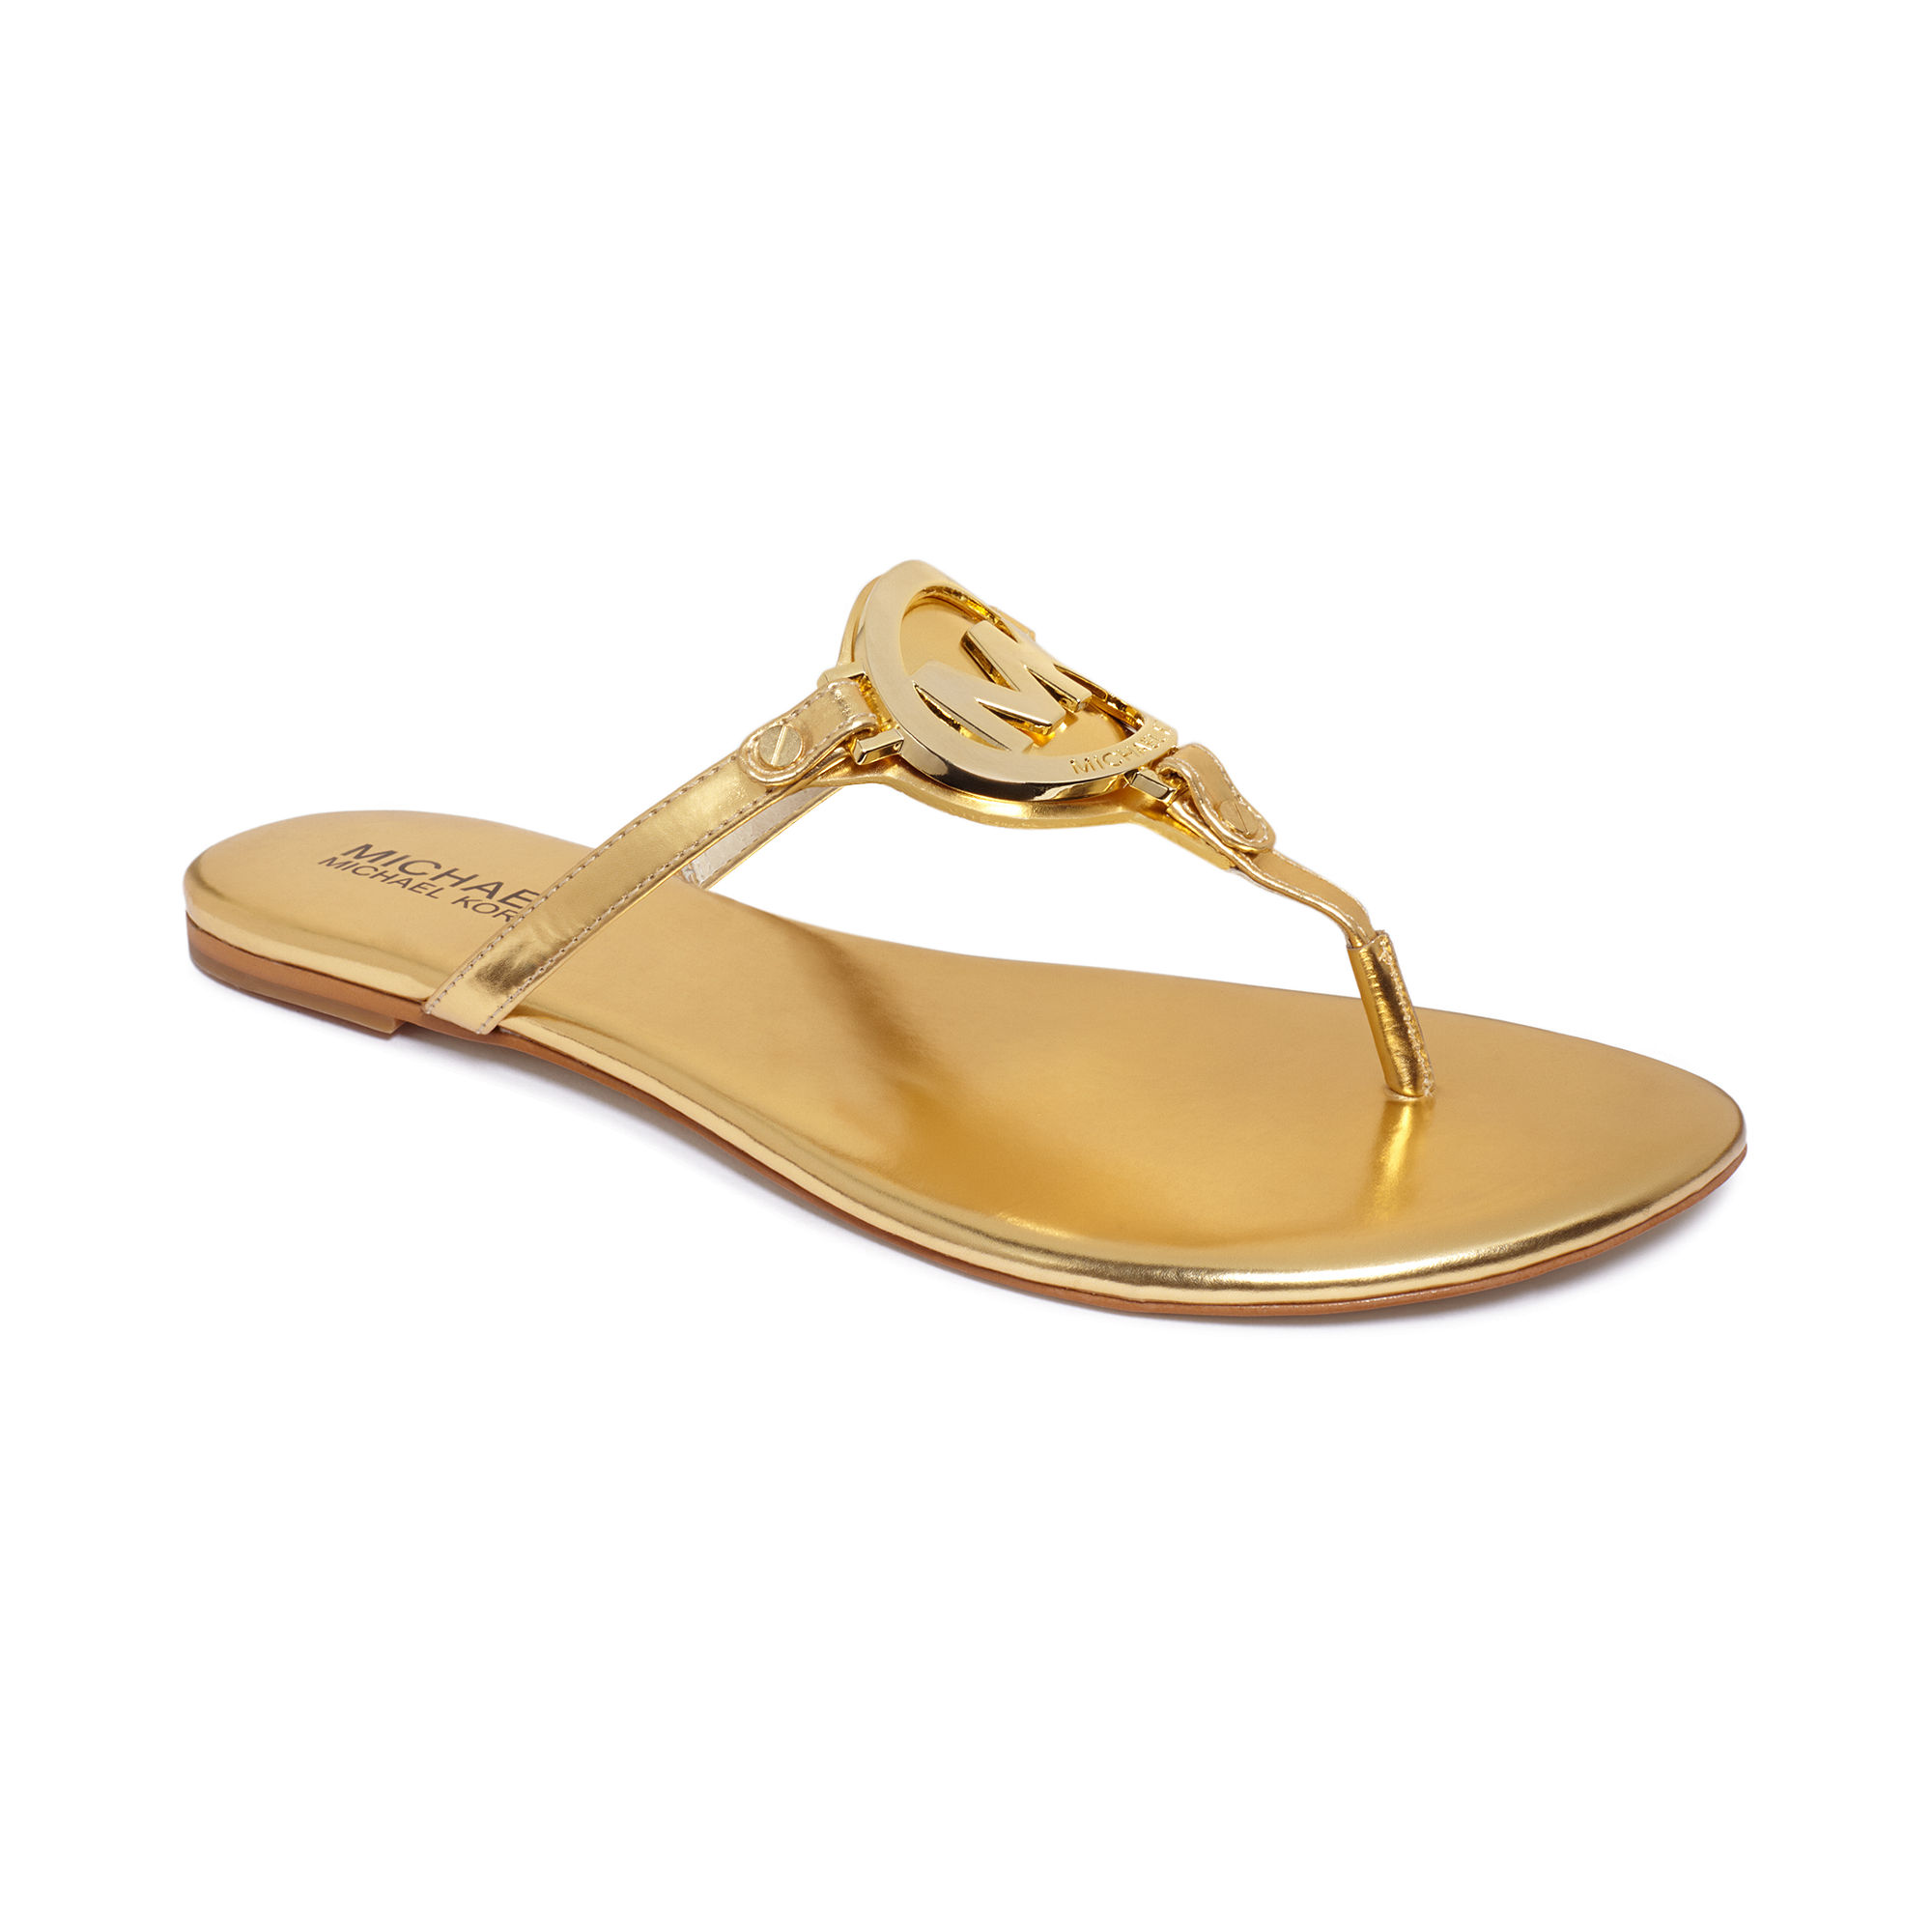 453baa9e7c12 Lyst - Michael Kors Melodie Flat Thong Sandals in Metallic